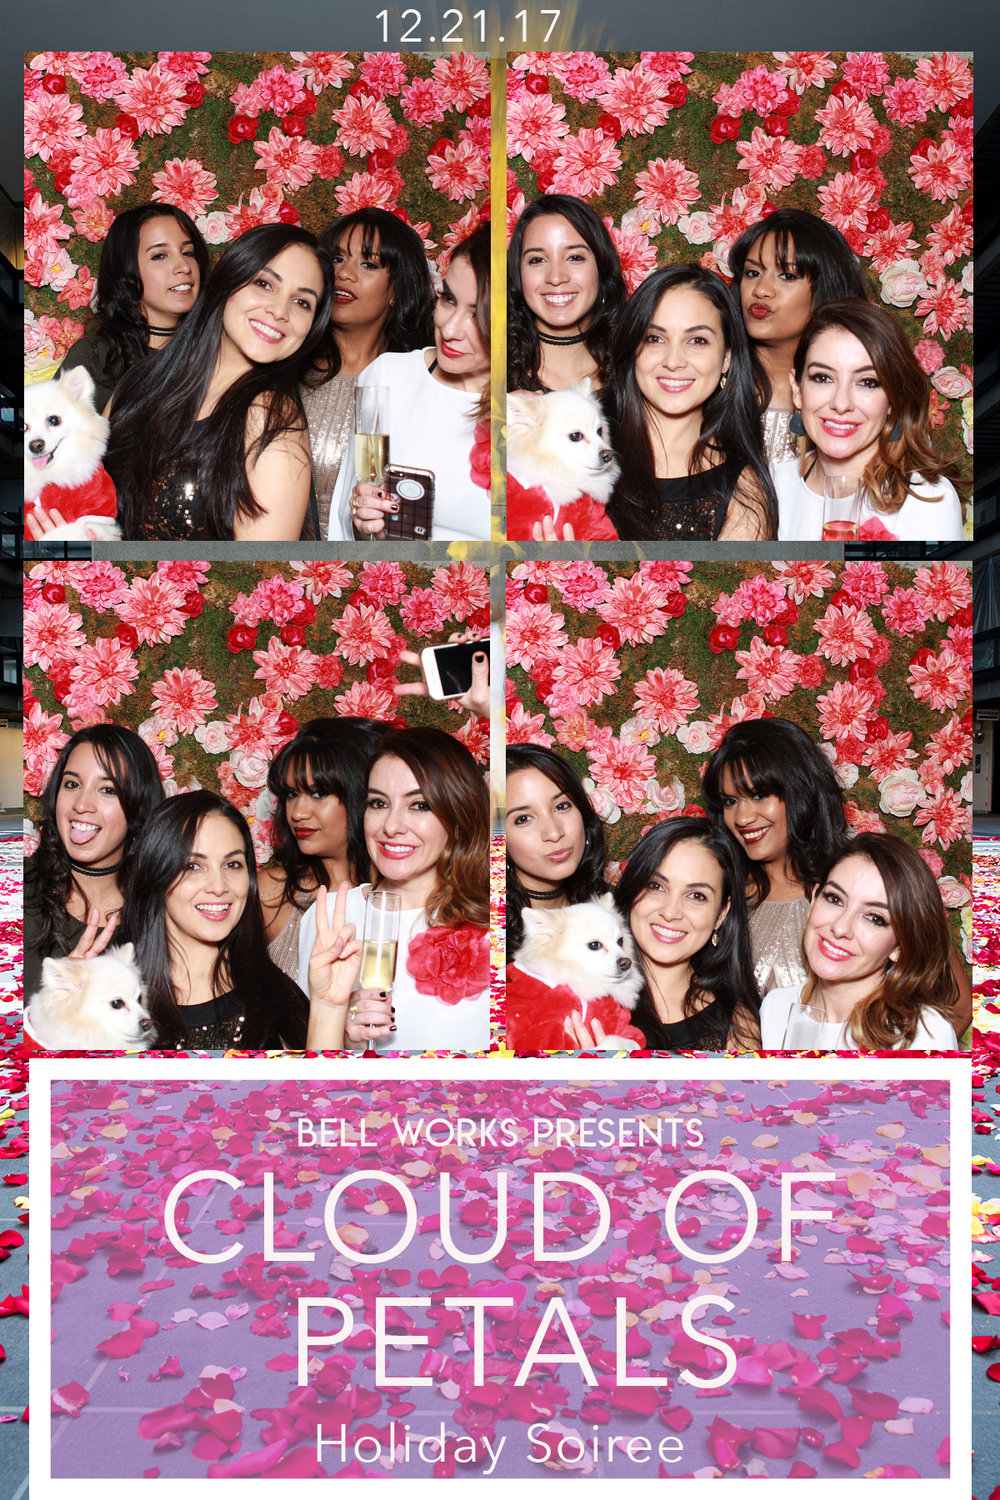 BellWorks Cloud of Petals Holiday Soiree